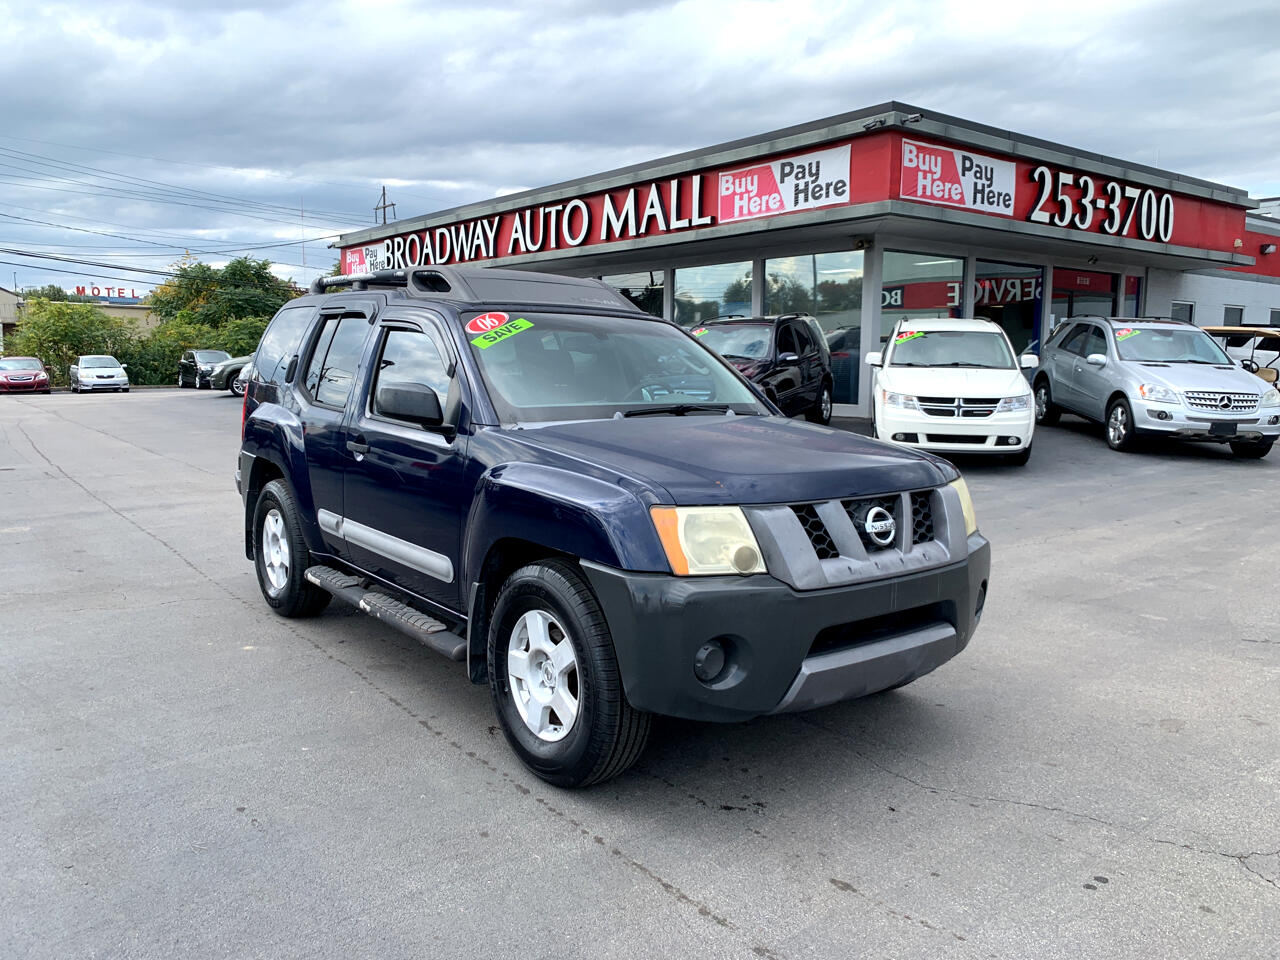 Used 2006 Nissan Xterra 4dr S V6 Auto 2wd For Sale In Lexington Ky 40505 Broadway Auto Mall